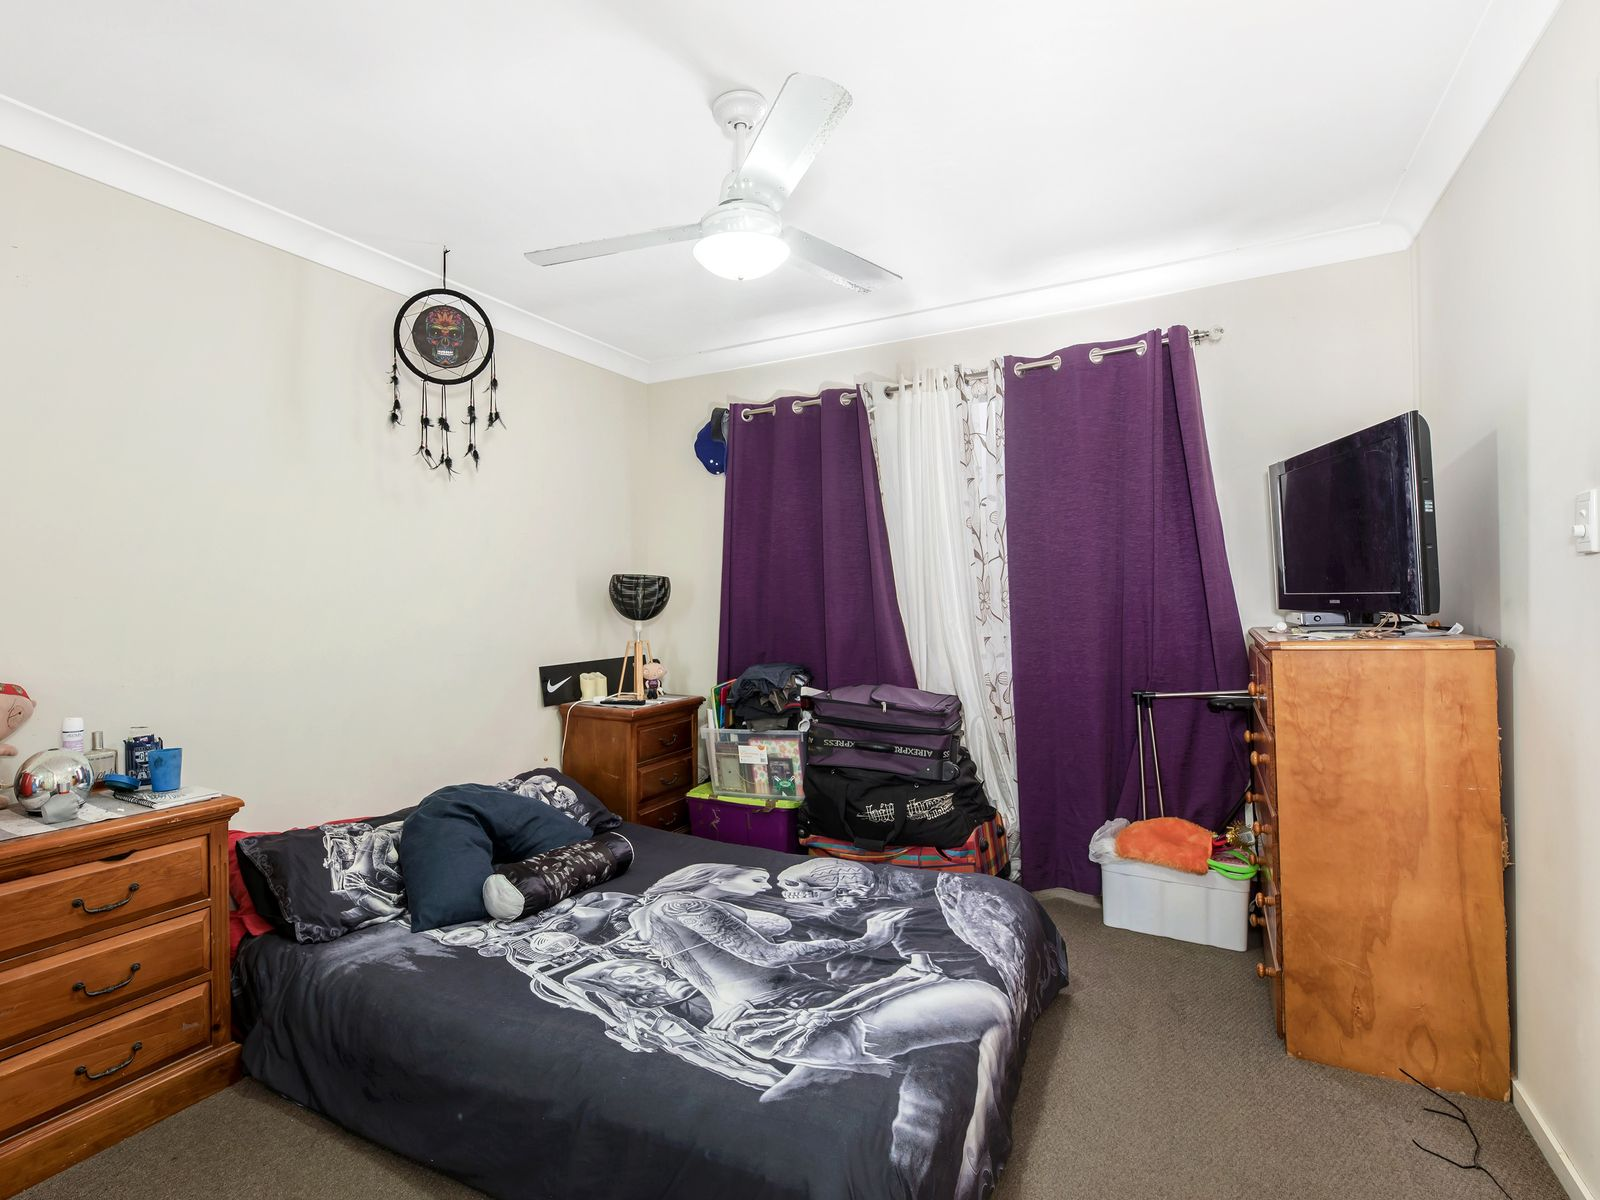 22/40-56 Gledson Street, North Booval, QLD 4304